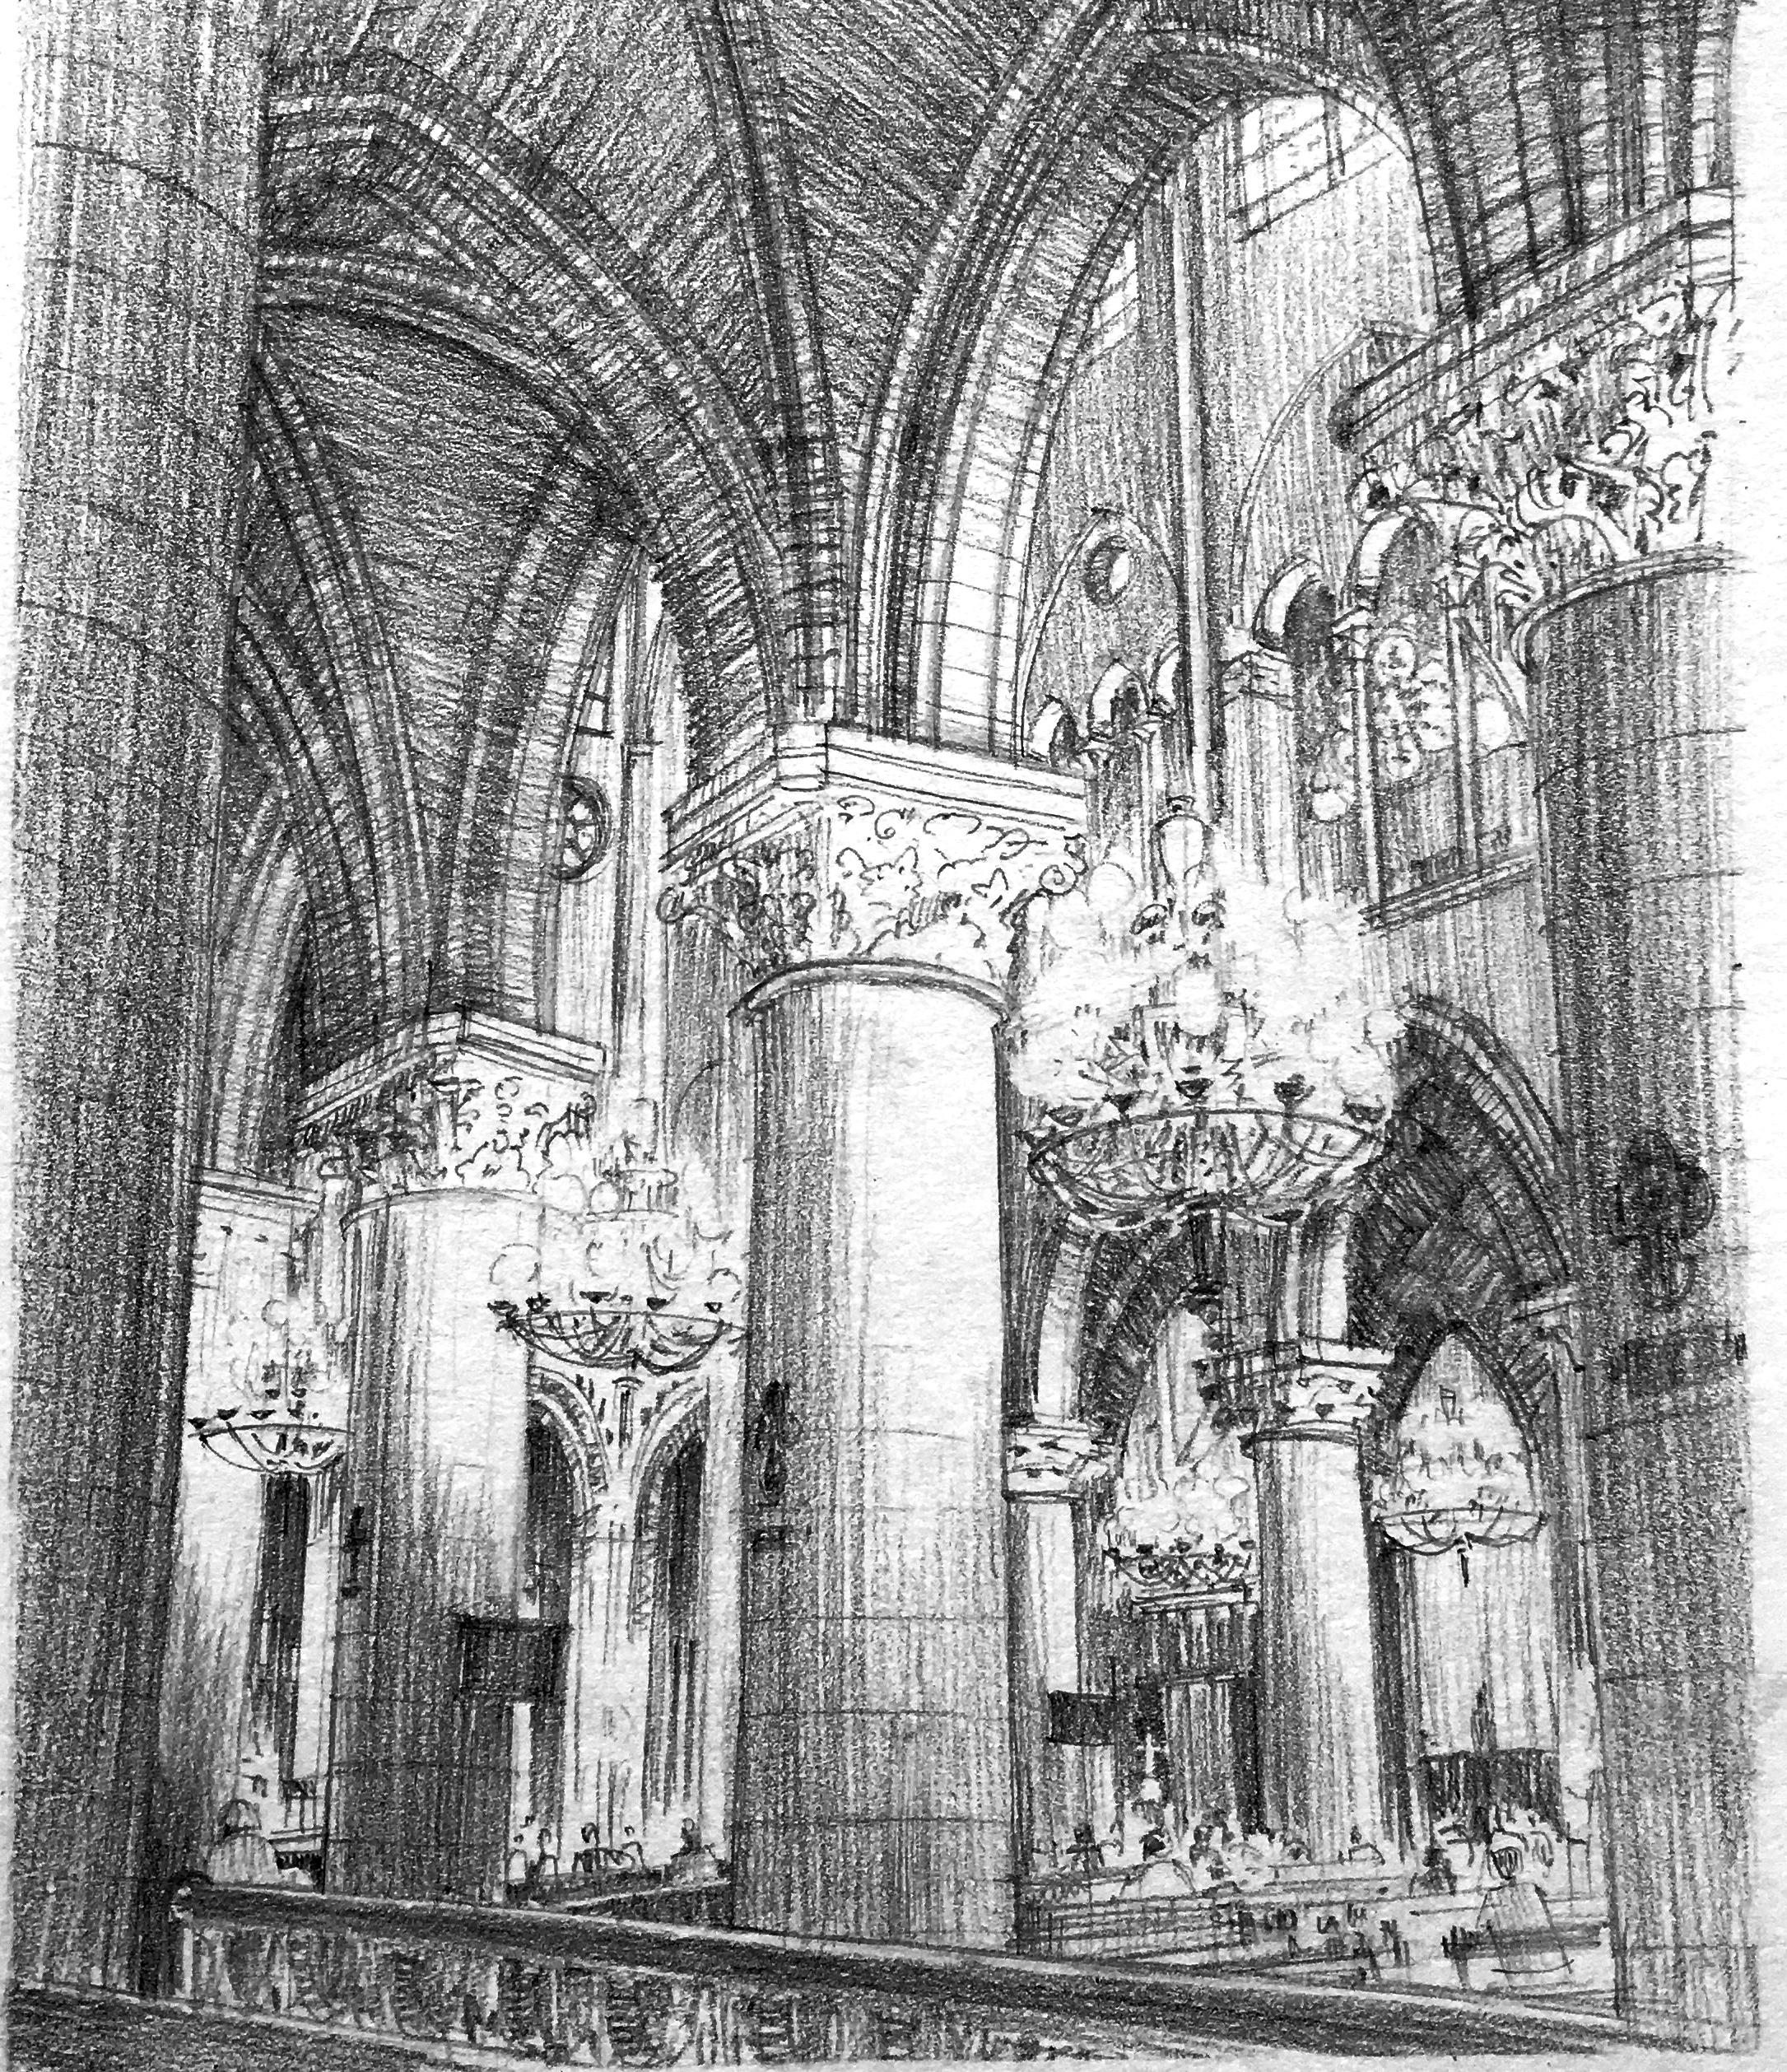 In this Notre Dame interior, the main light effect is across the middle of the drawing from the chandeliers, but there was also the secondary light source of the celestory windows high in the nave walls to consider.